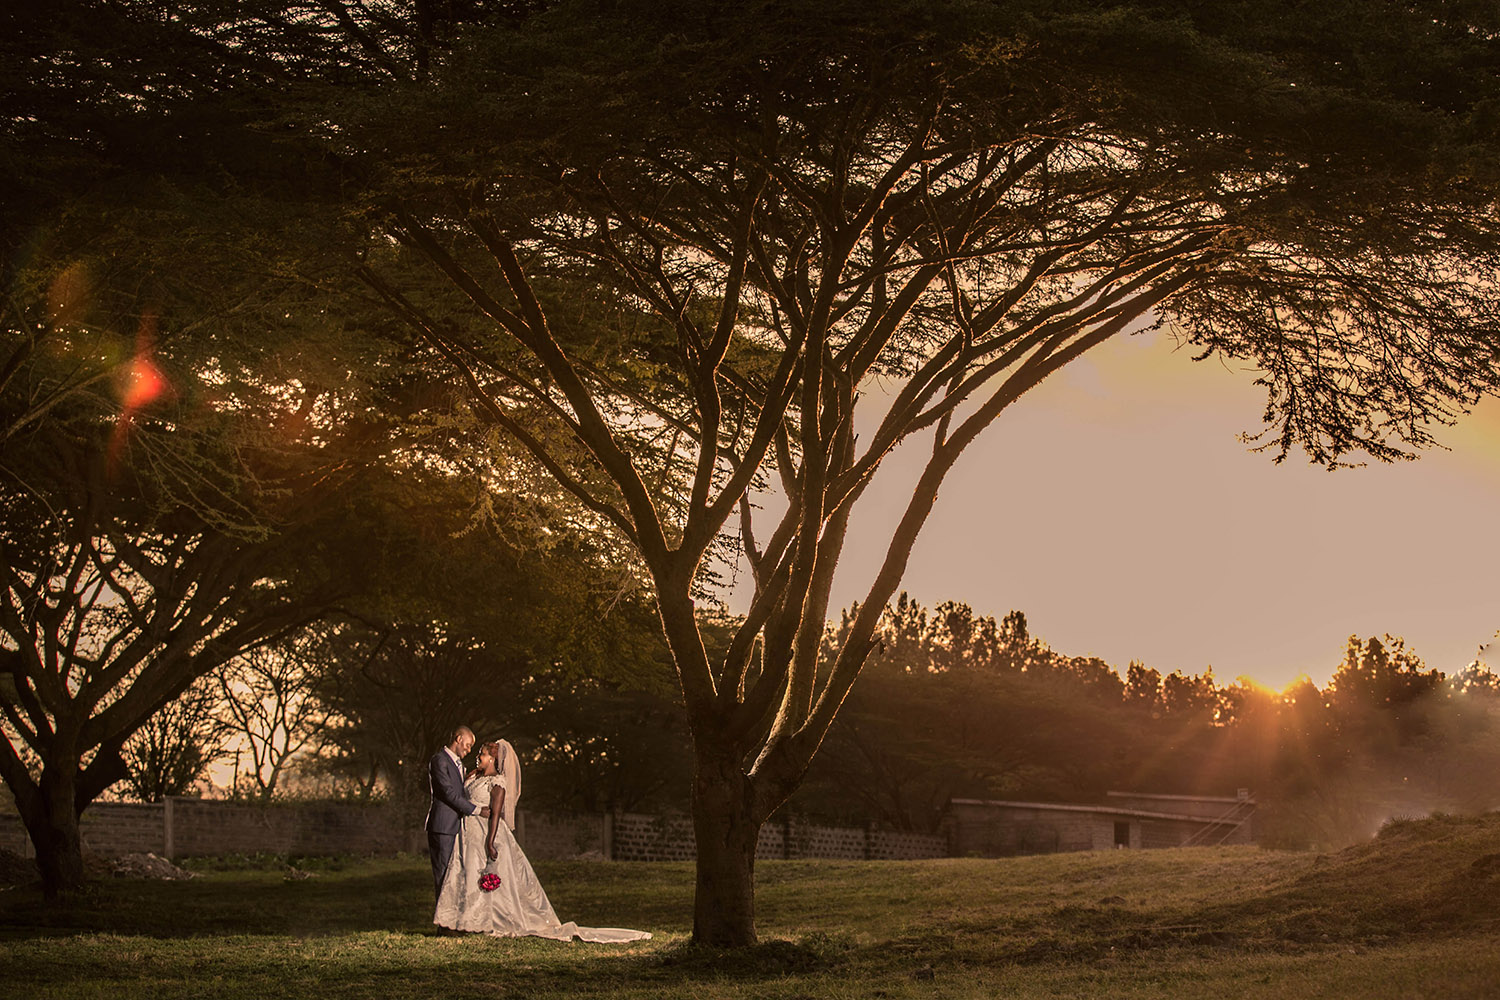 kenya-wedding-acacia-tree.jpg